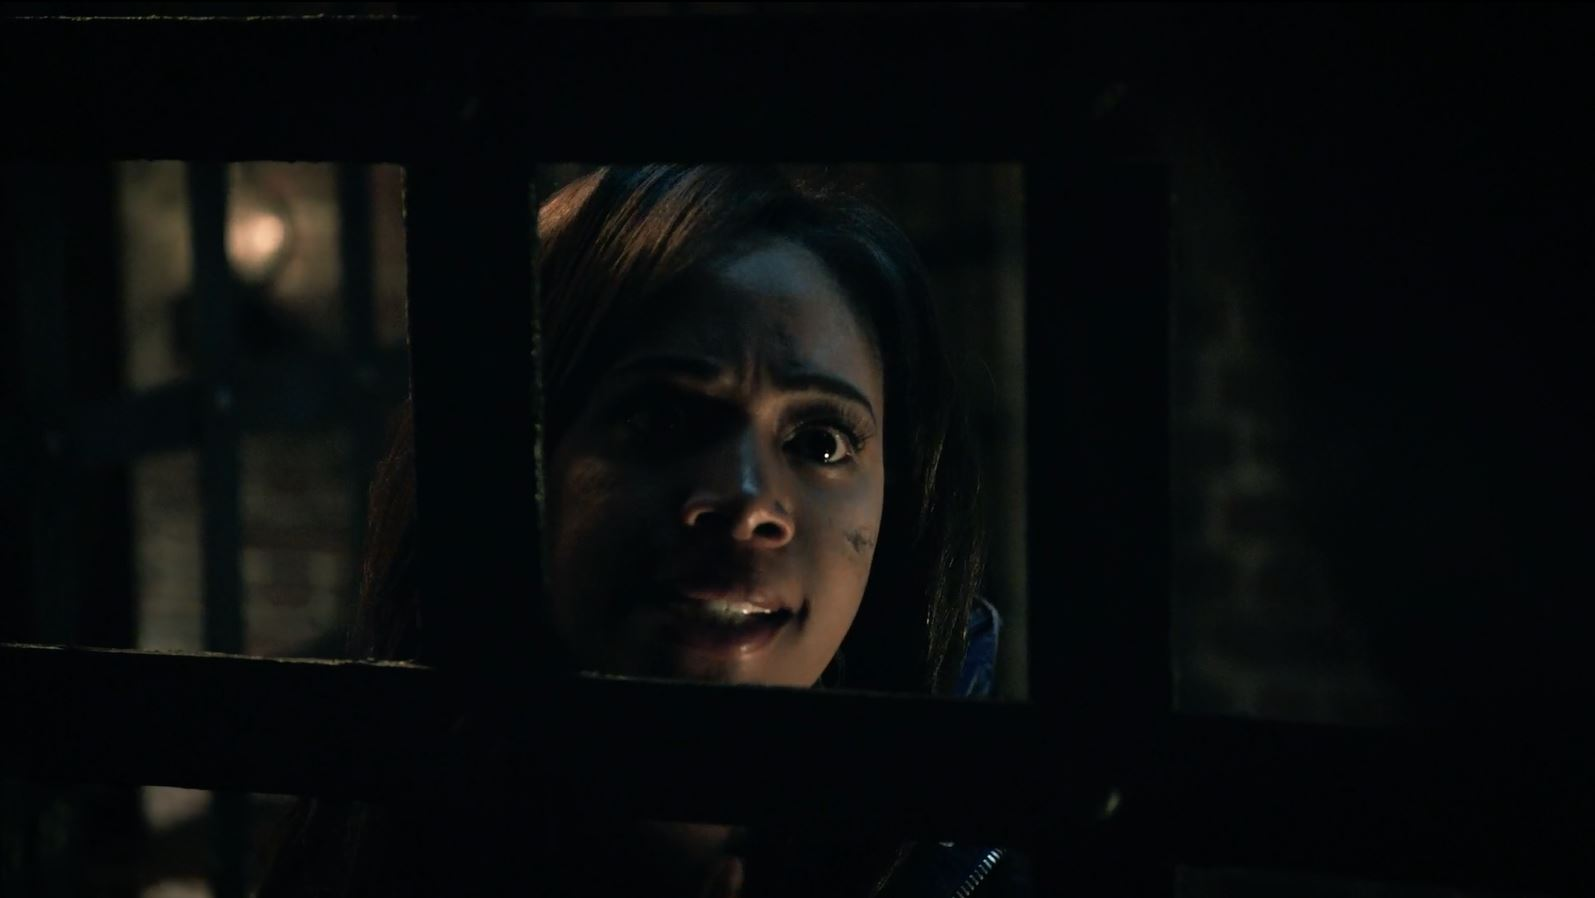 Sleepy Hollow Season 2 Finale Review. Abbie warns Ichabod about the horseman